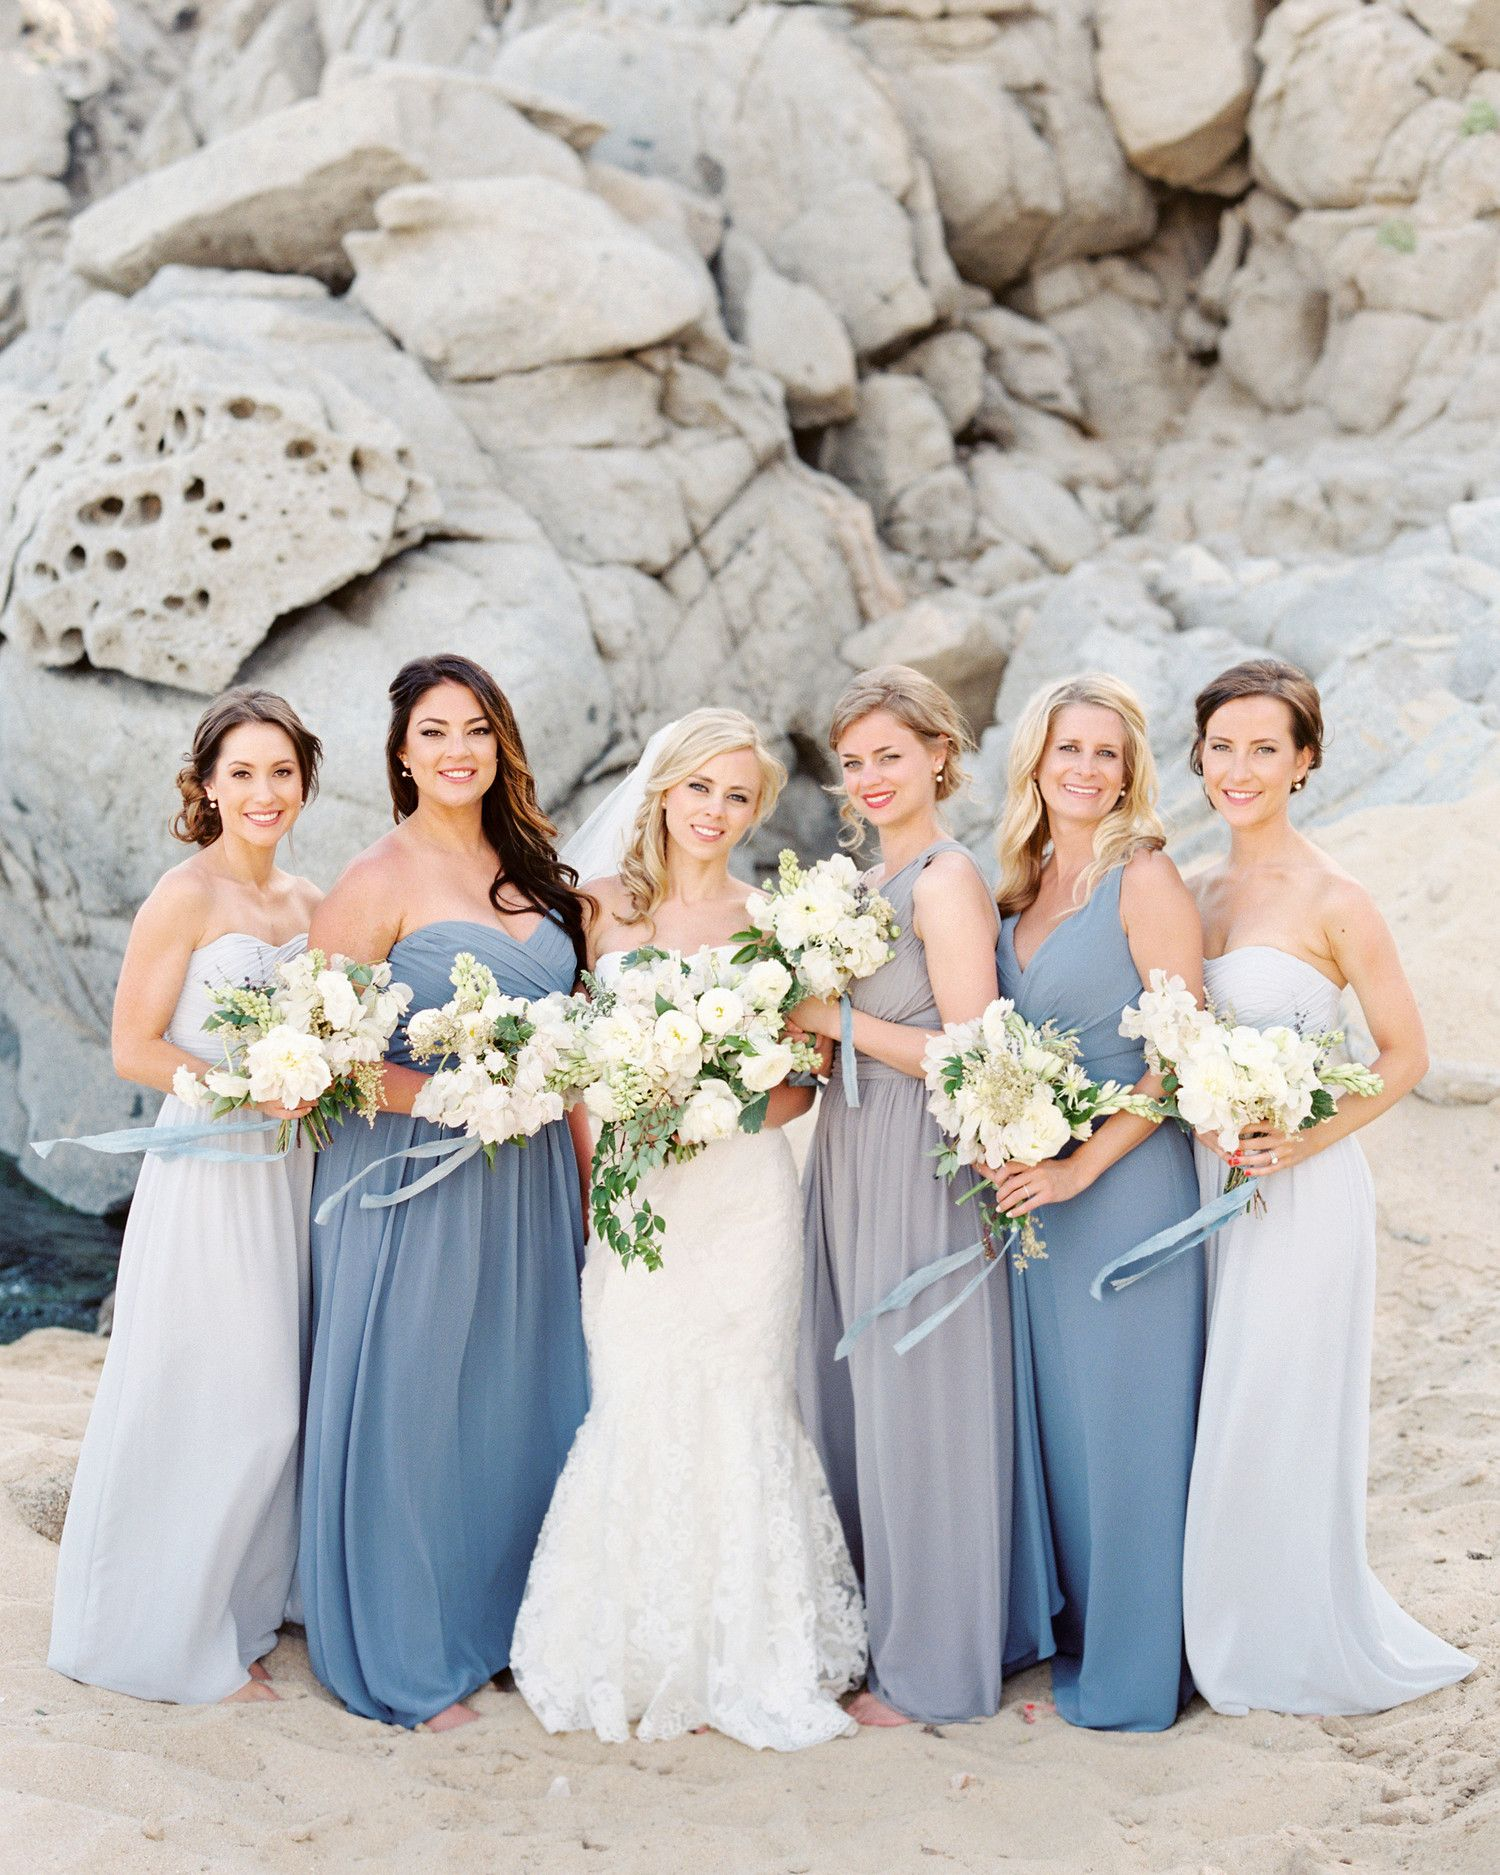 Blue or gray dresses l t wedding pinterest gray dress bridesmaids stuck to the ocean weddings color scheme with blue or gray dress in the style of their choice ombrellifo Gallery